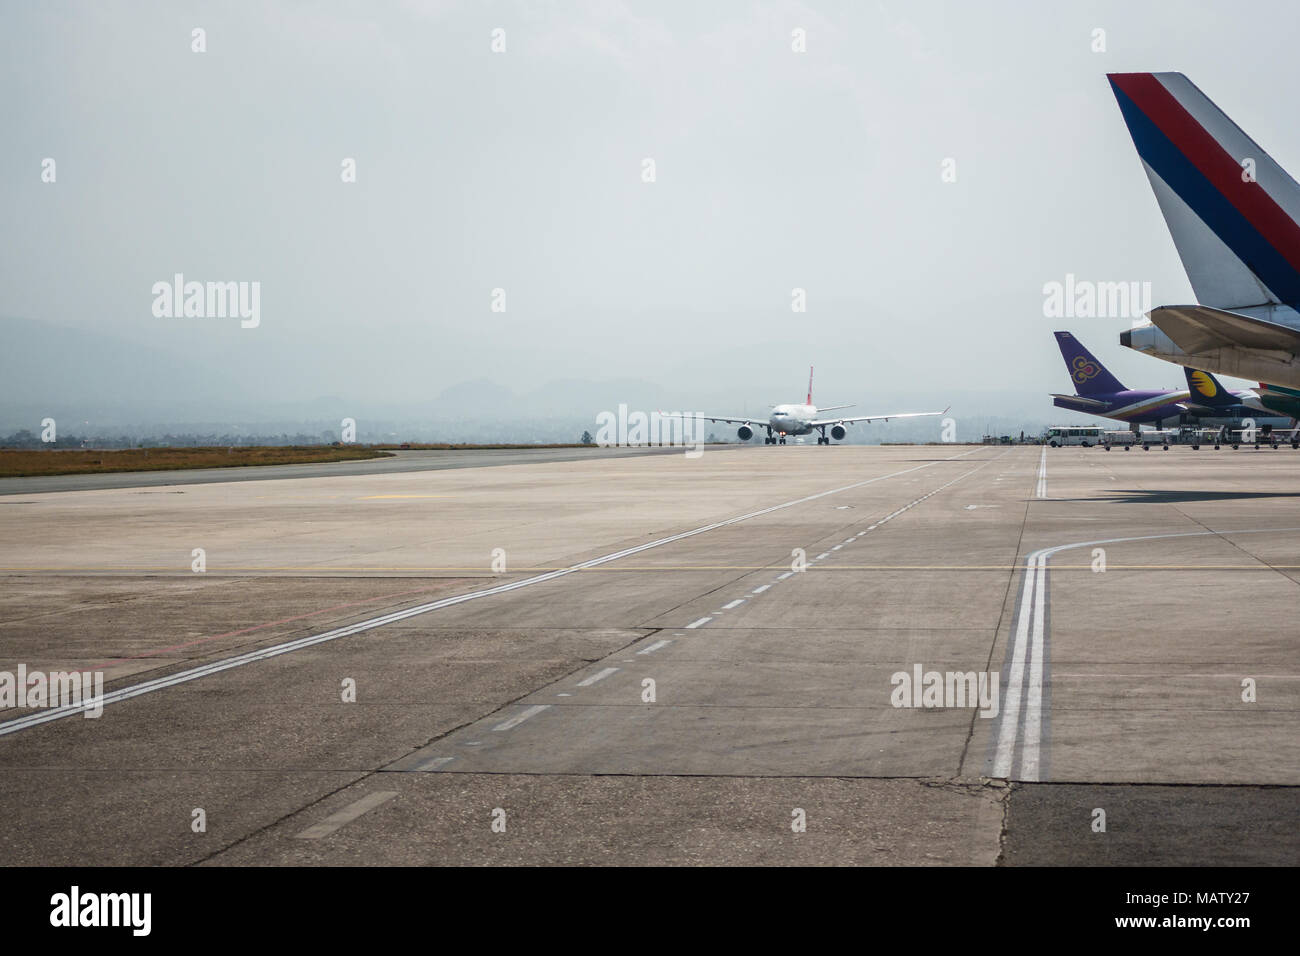 KATHMANDU, NEPAL - CIRCA MARCH 2108: Airplane taxiing at Tribhuvan International Airport. - Stock Image